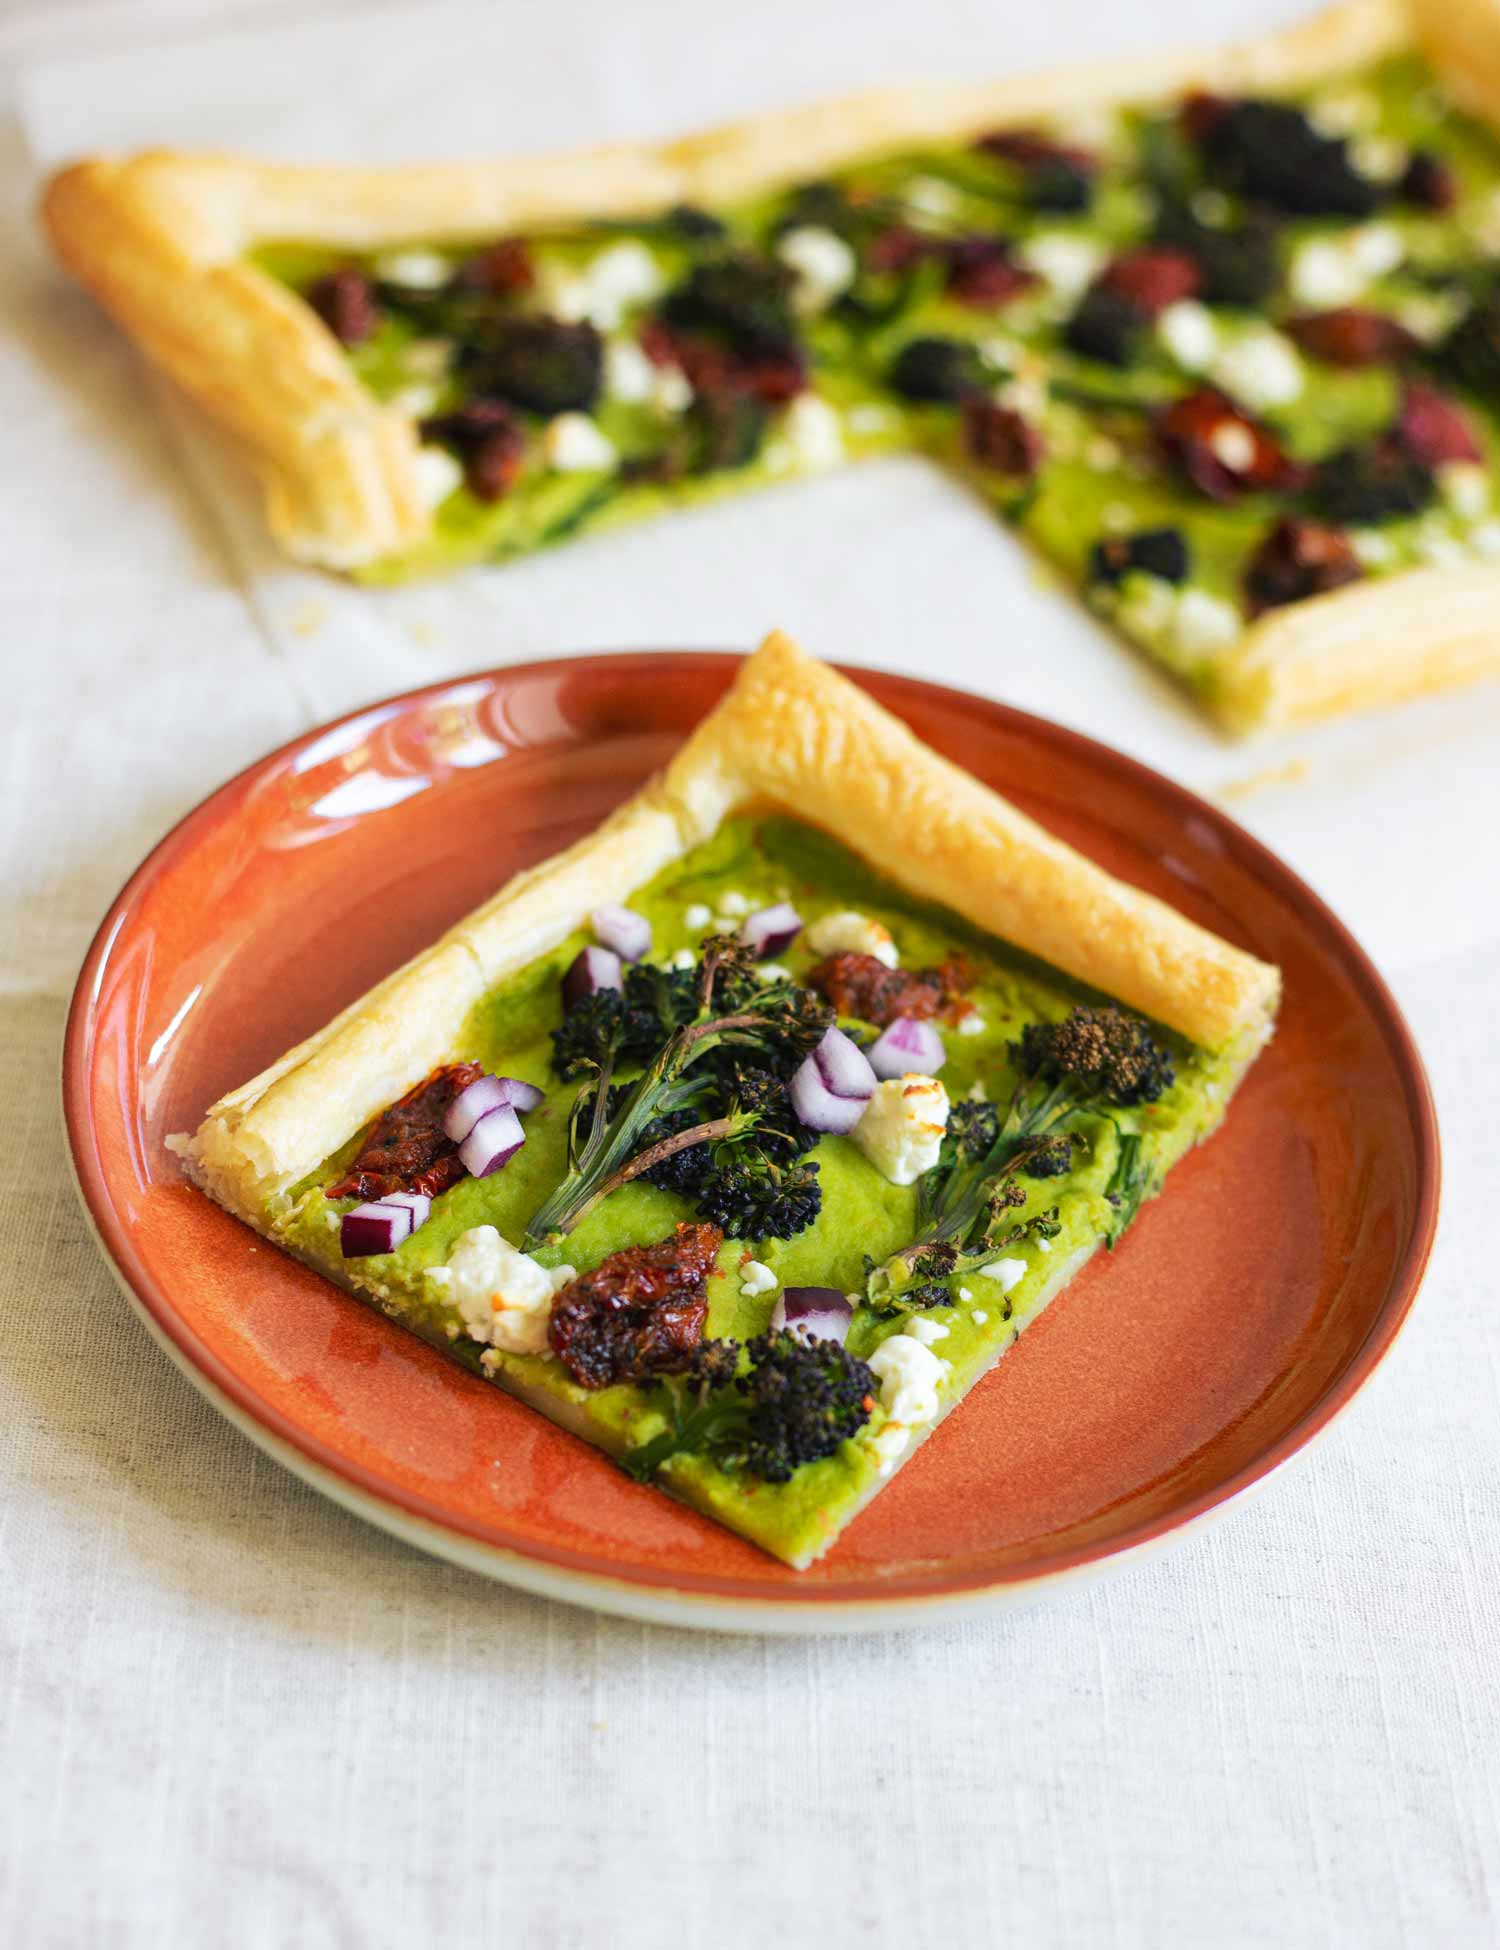 A slice of a pastry with a green puree, broccoli, tomato and cheese on top